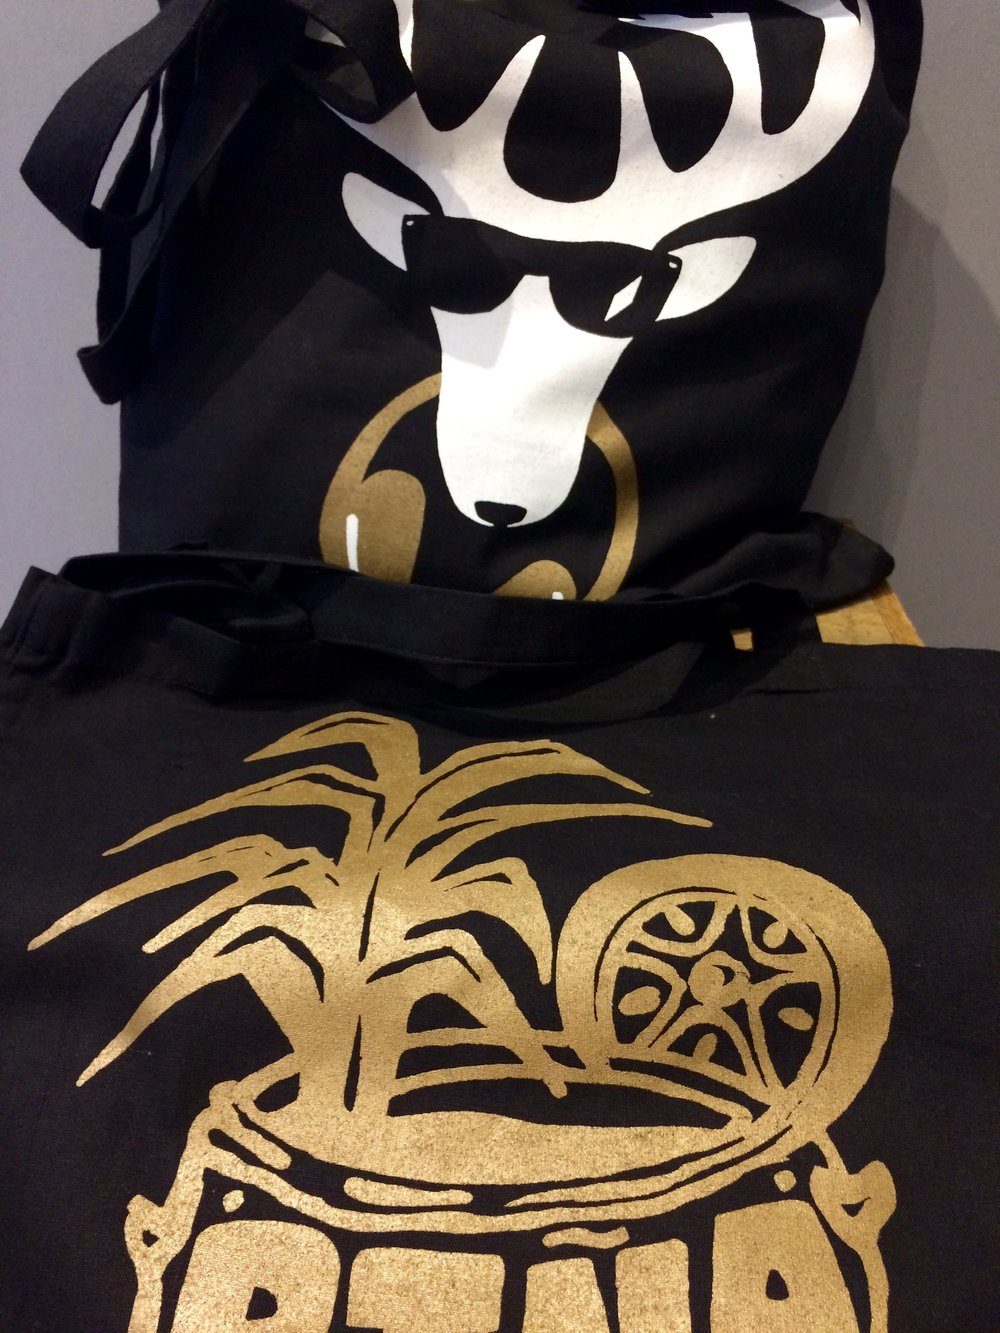 DJ Stag and Pina Colada Tote Bags